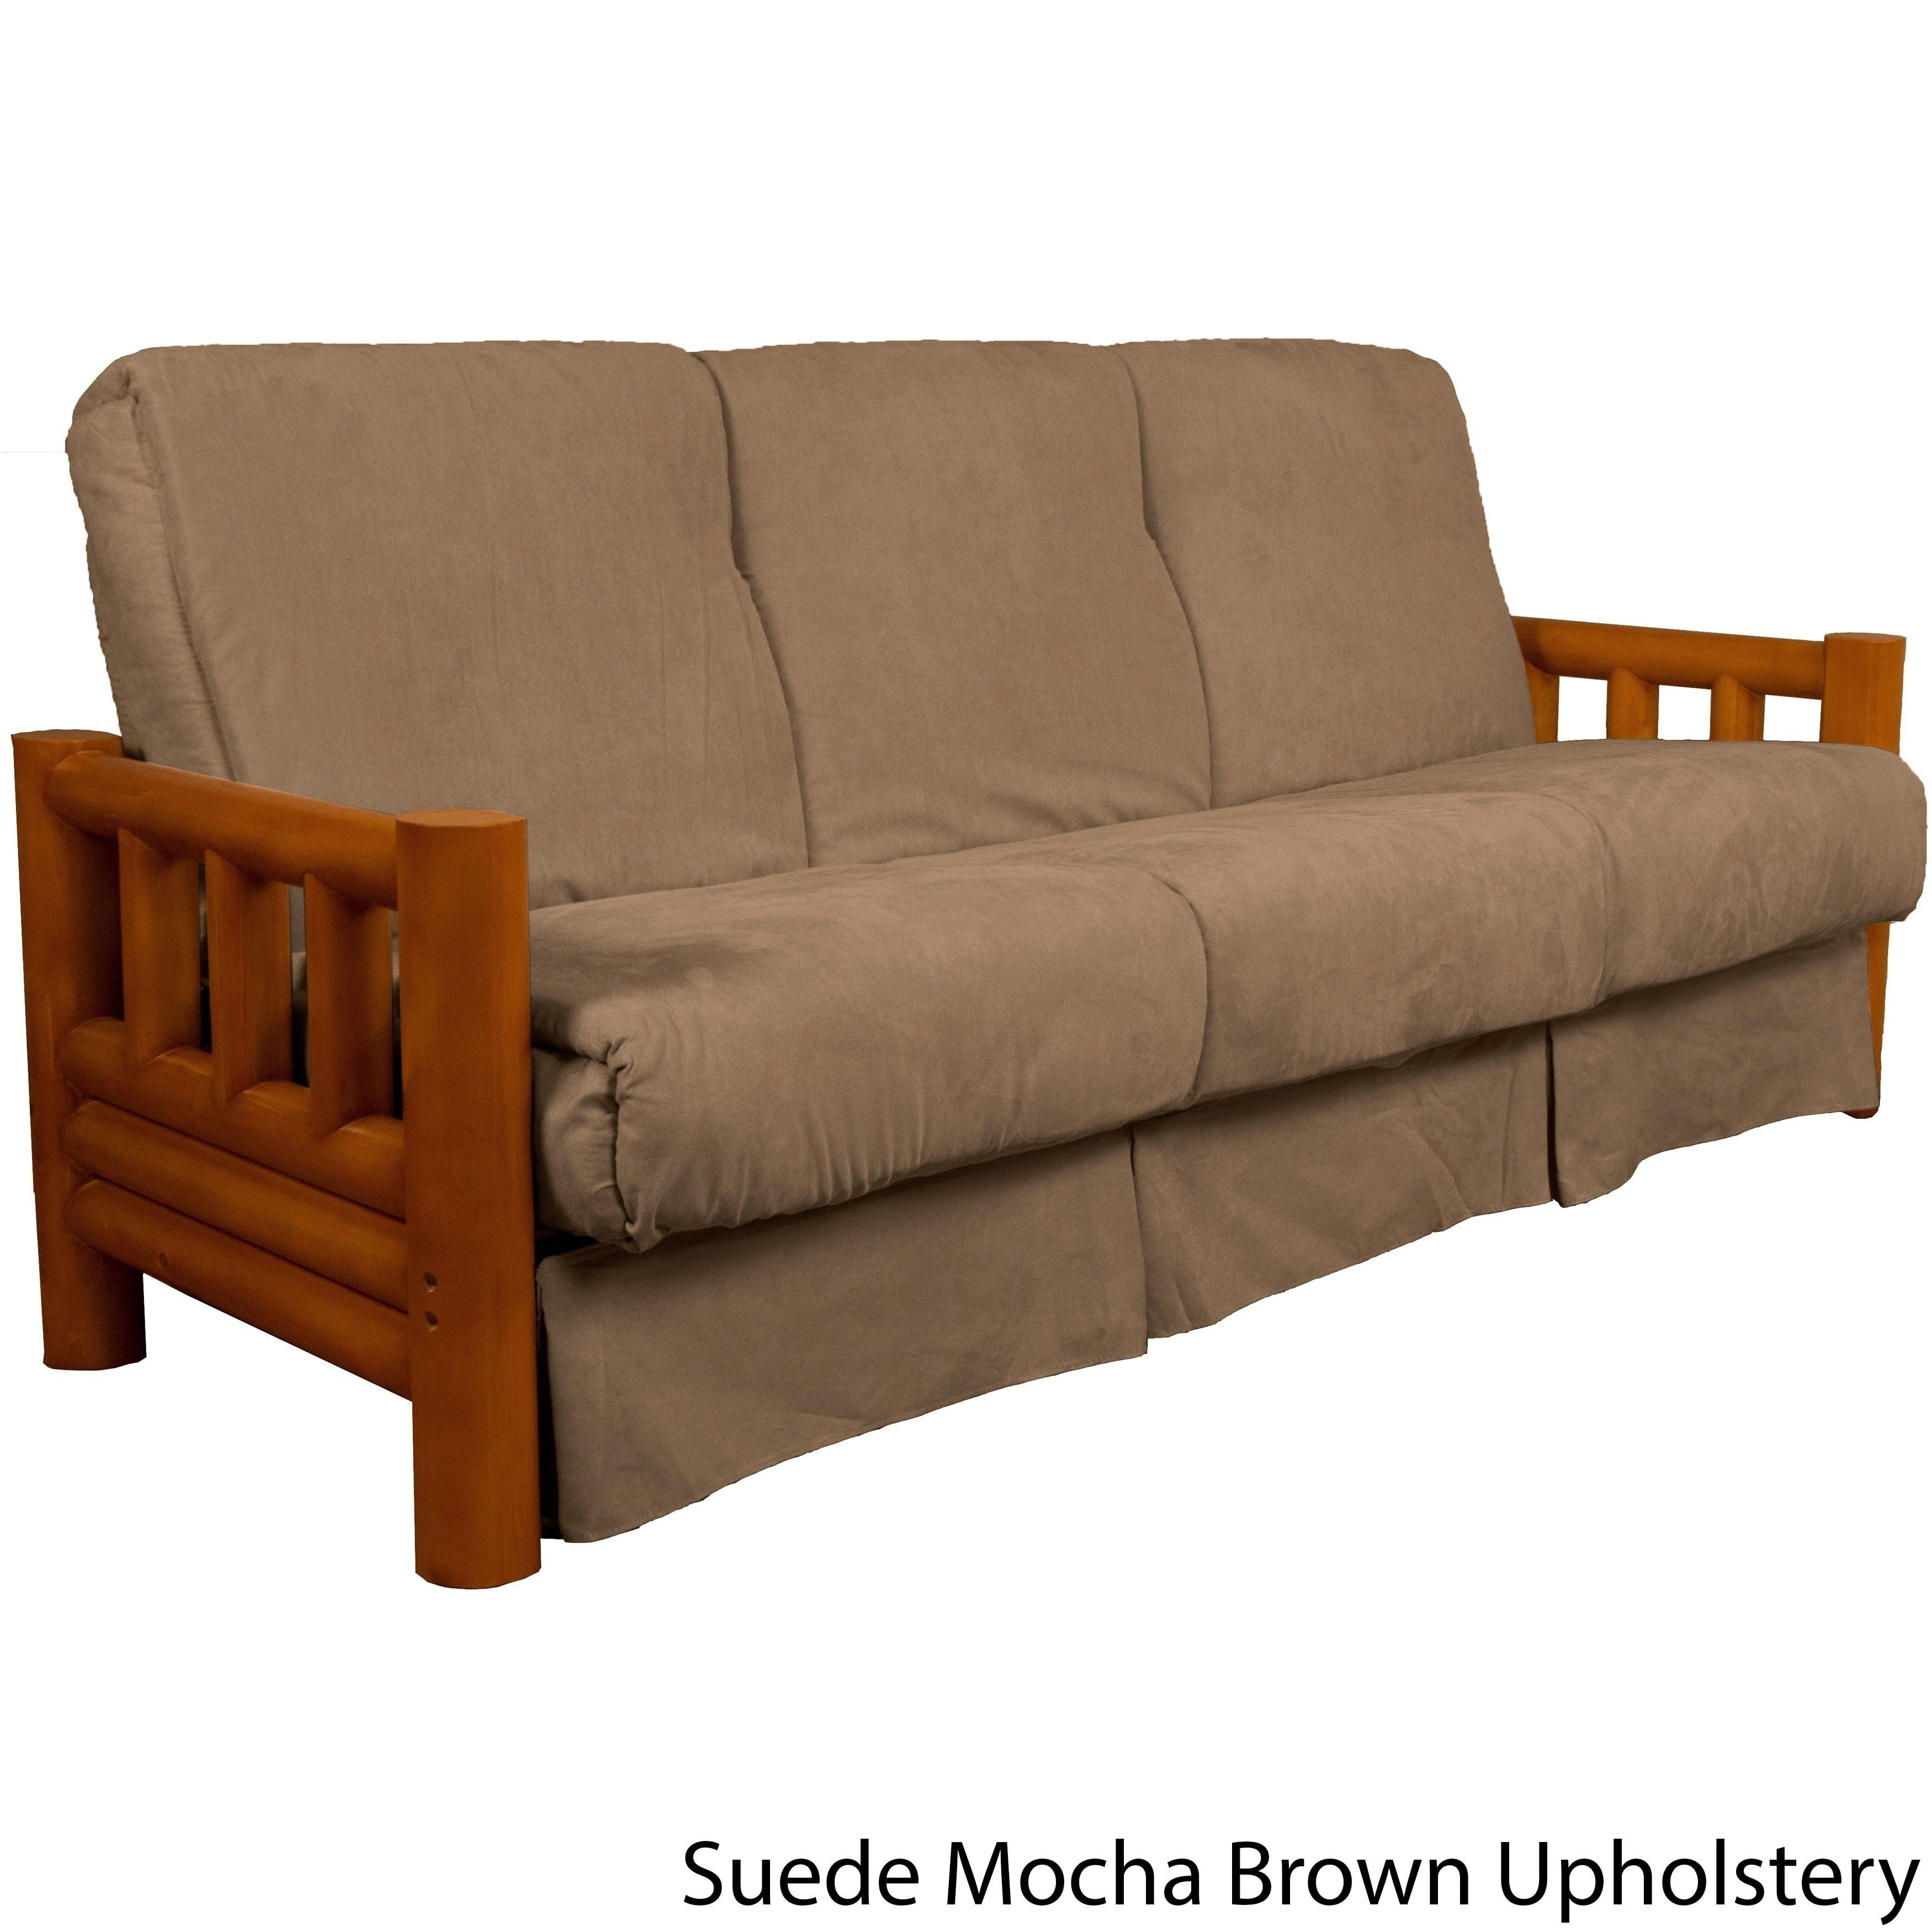 Astonishing Pine Canopy Tuskegee Lodge Style Pillow Top Sofa Sleeper Bed Ocoug Best Dining Table And Chair Ideas Images Ocougorg